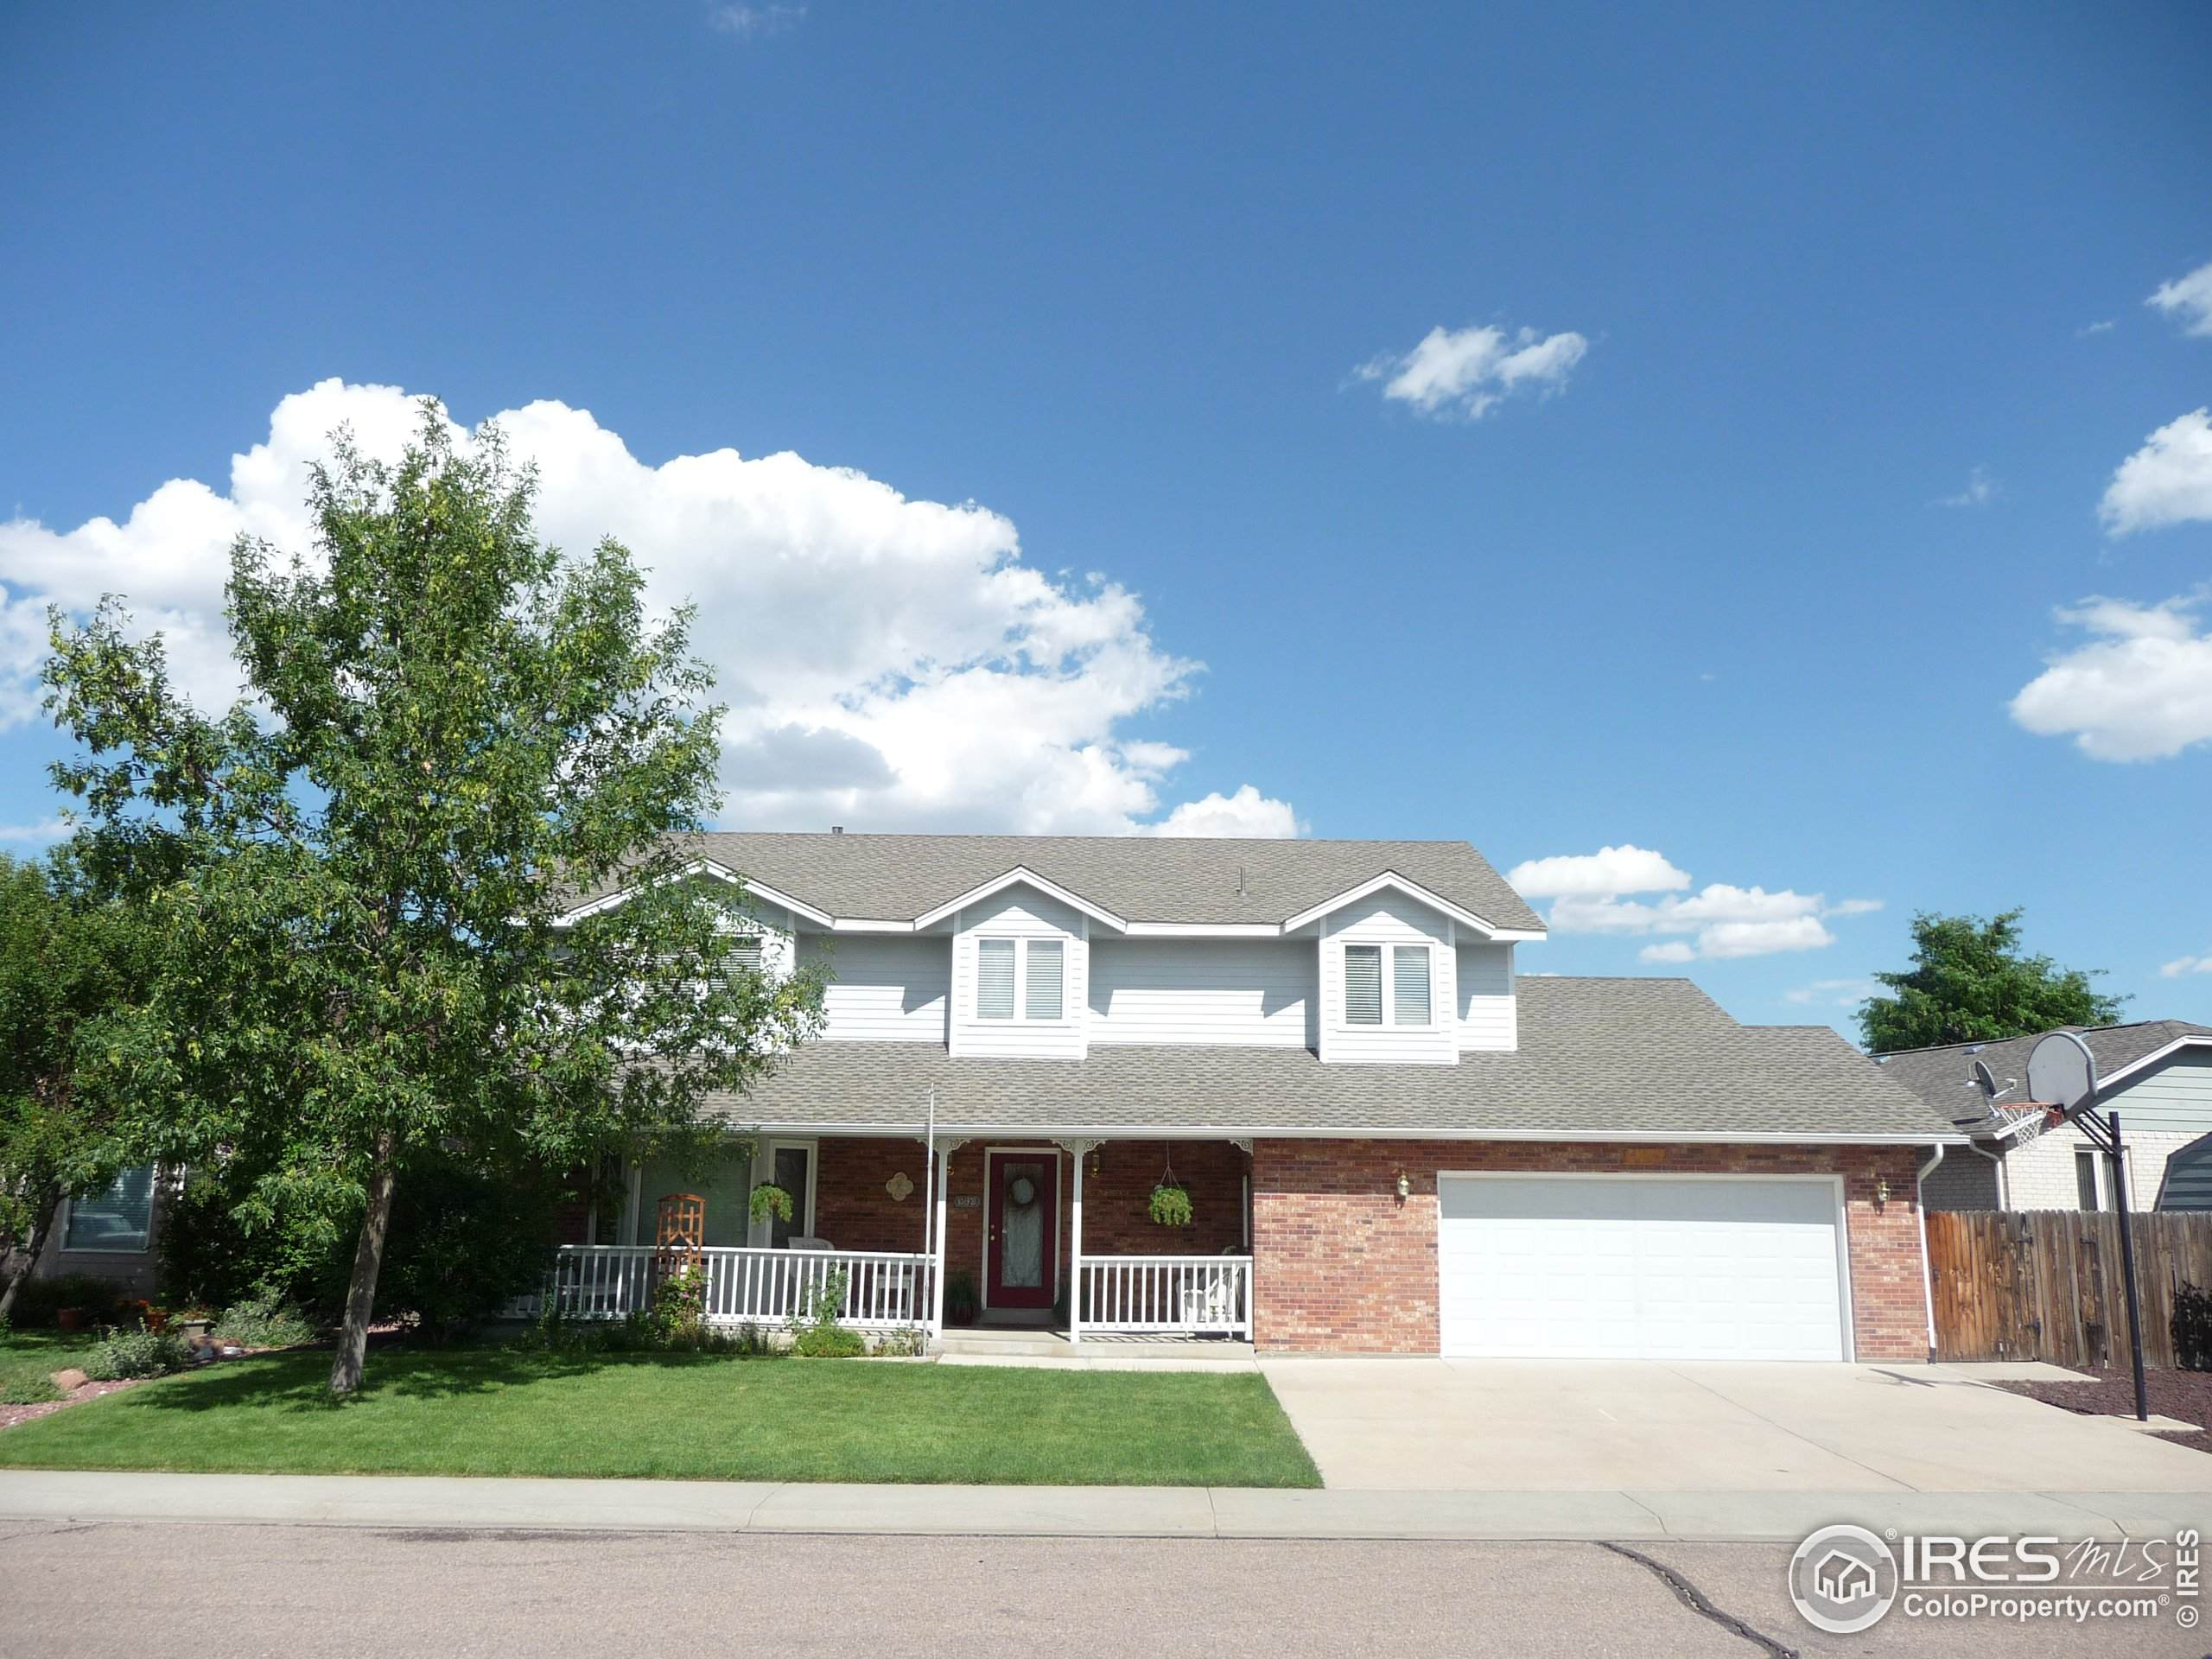 3020 Hackney Ln, Fort Collins, CO 80525 (#934261) :: The Margolis Team